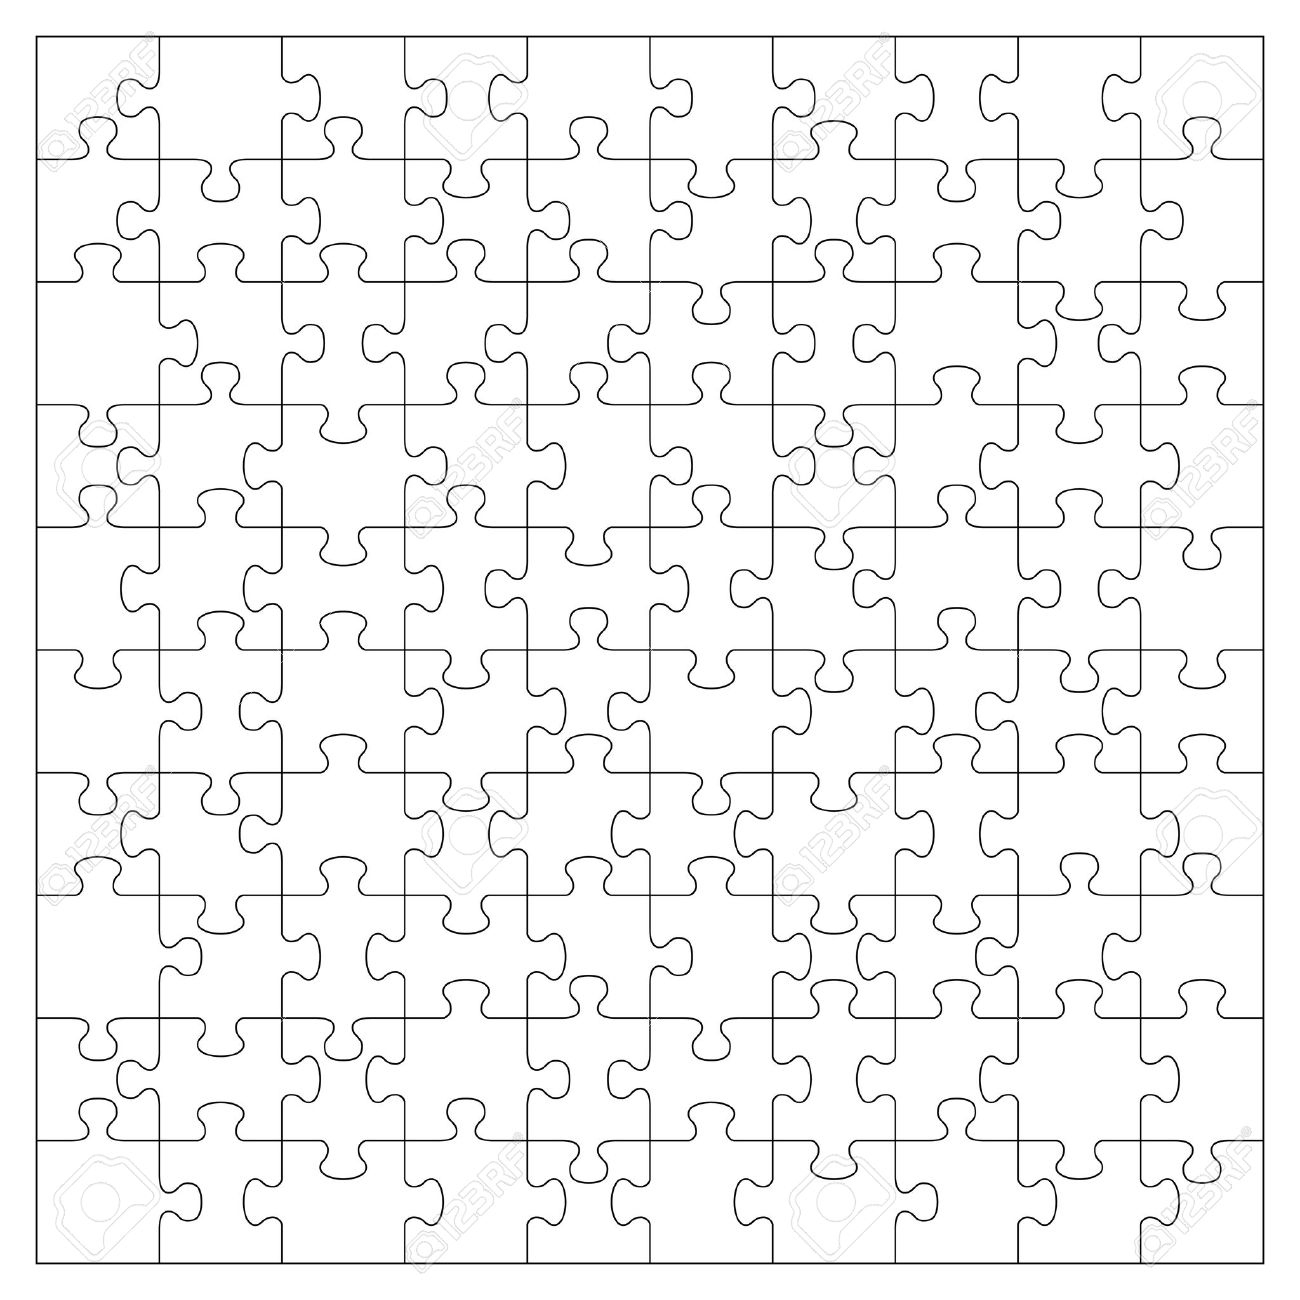 Vector Transparent Jigsaw Puzzle With 100 Pieces Royalty Free